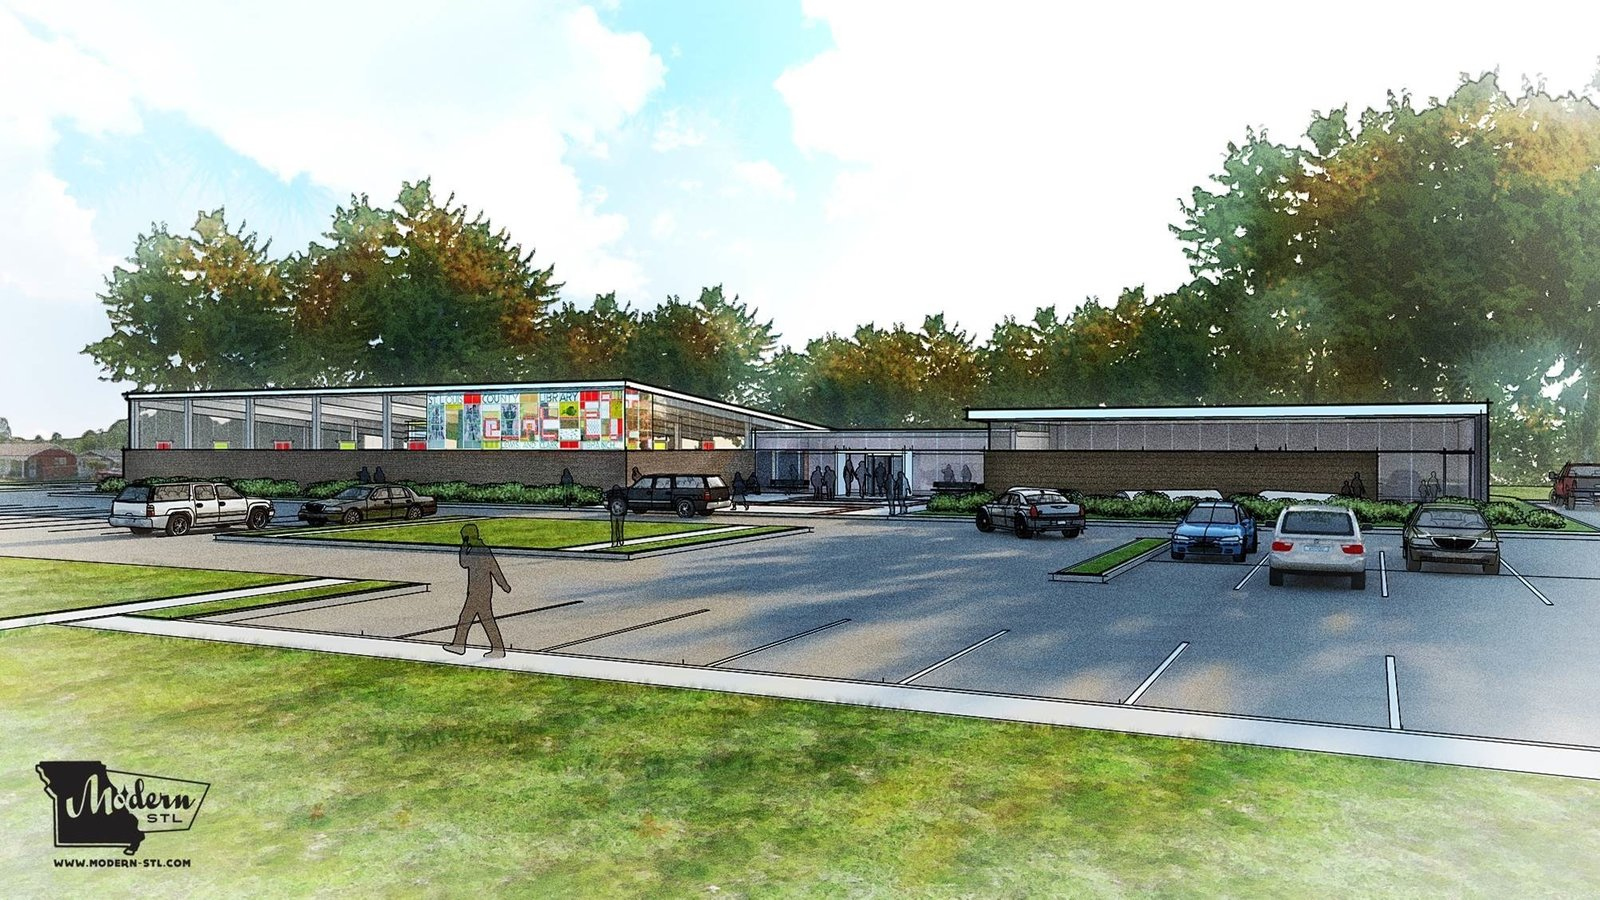 A rendering of a proposed 3,500-square-foot addition that would preserve Dunn's original building. This proposal was designed by Neil Chace of SPACE Architects and Modern STL's board president; Jeremy Clagett of SPACE Architects; and Jon Hagar of Fox Architects. Image courtesy of Modern STL.  Photo 11 of 11 in Near St. Louis, A Midcentury-Modern Public Library Faces Demolition